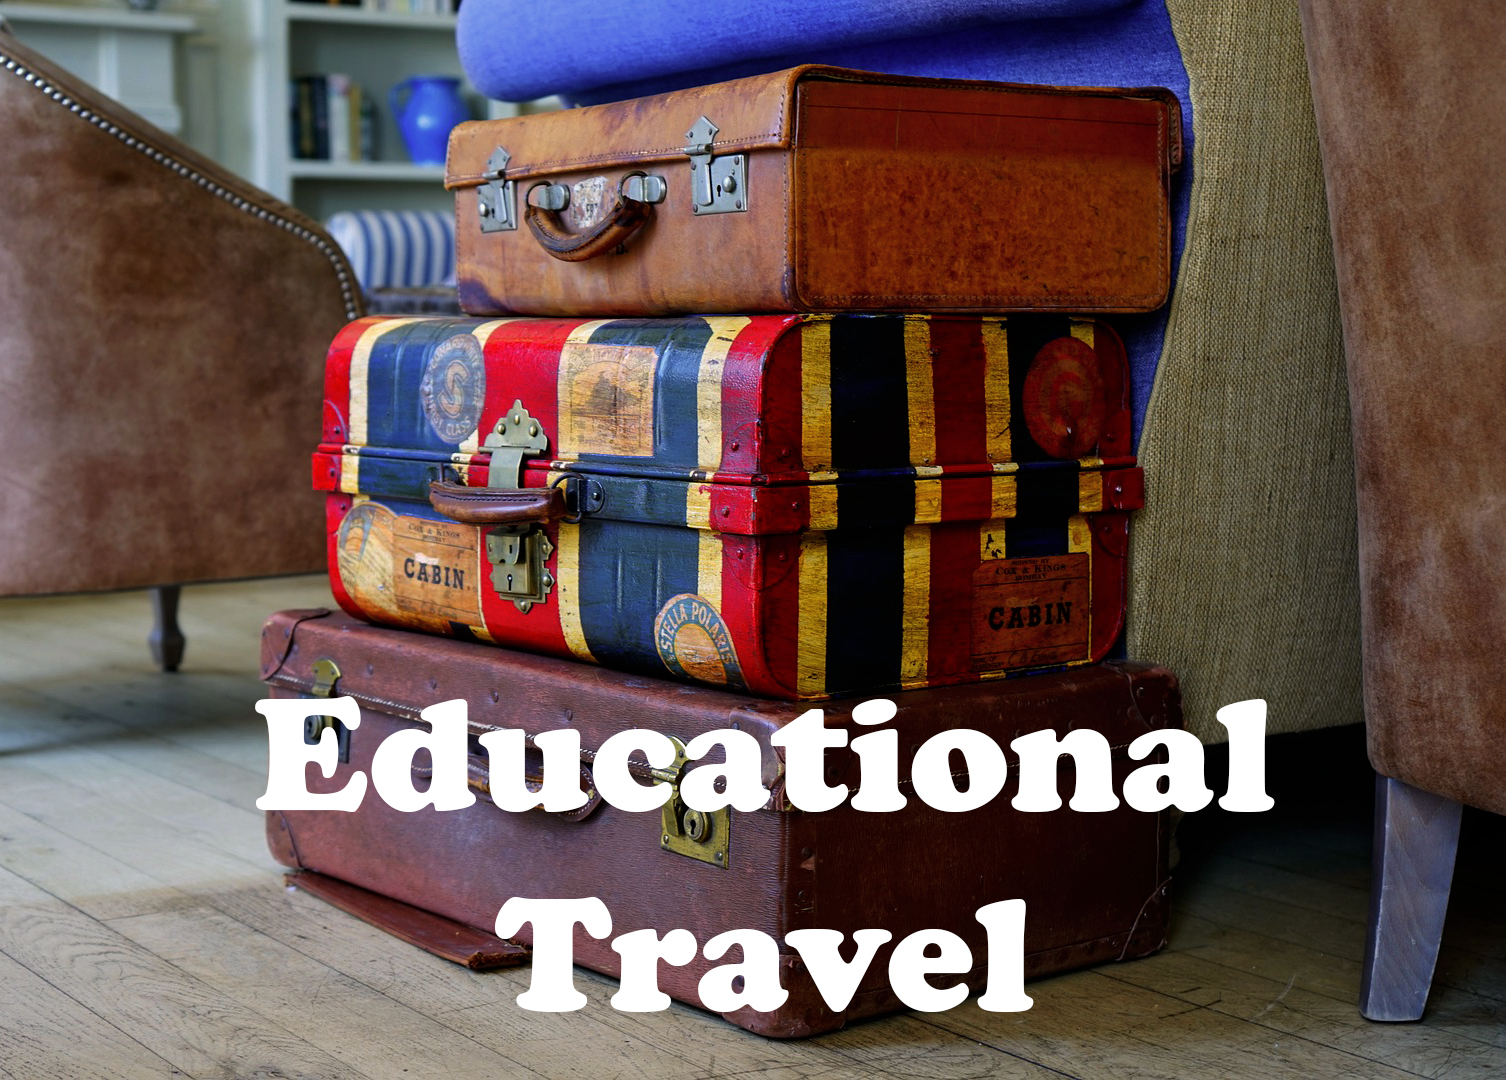 uploads/category/Educational Travel